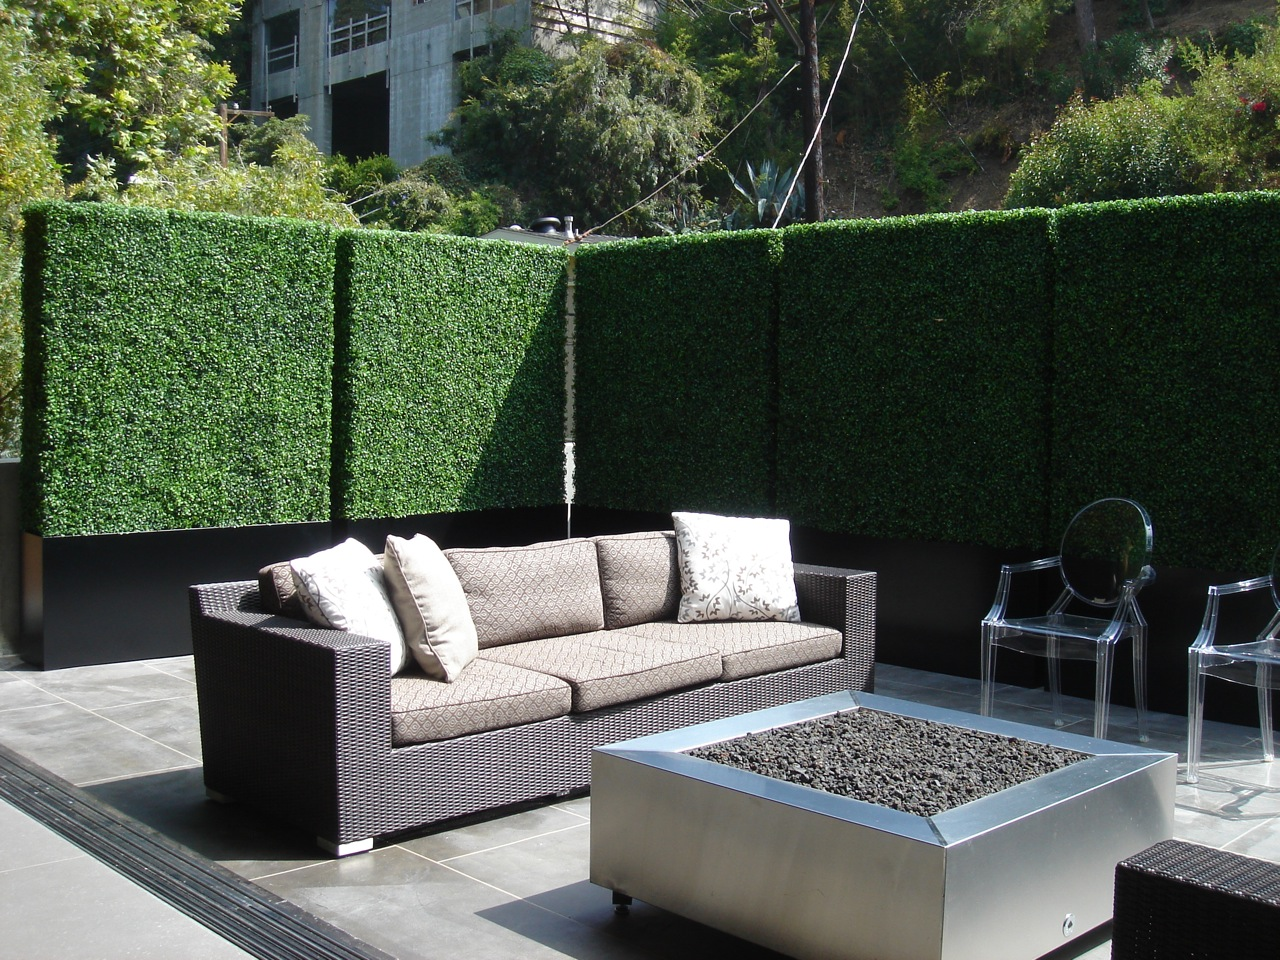 balcony privacy screen outdoor privacy screens privacy hedges. Black Bedroom Furniture Sets. Home Design Ideas